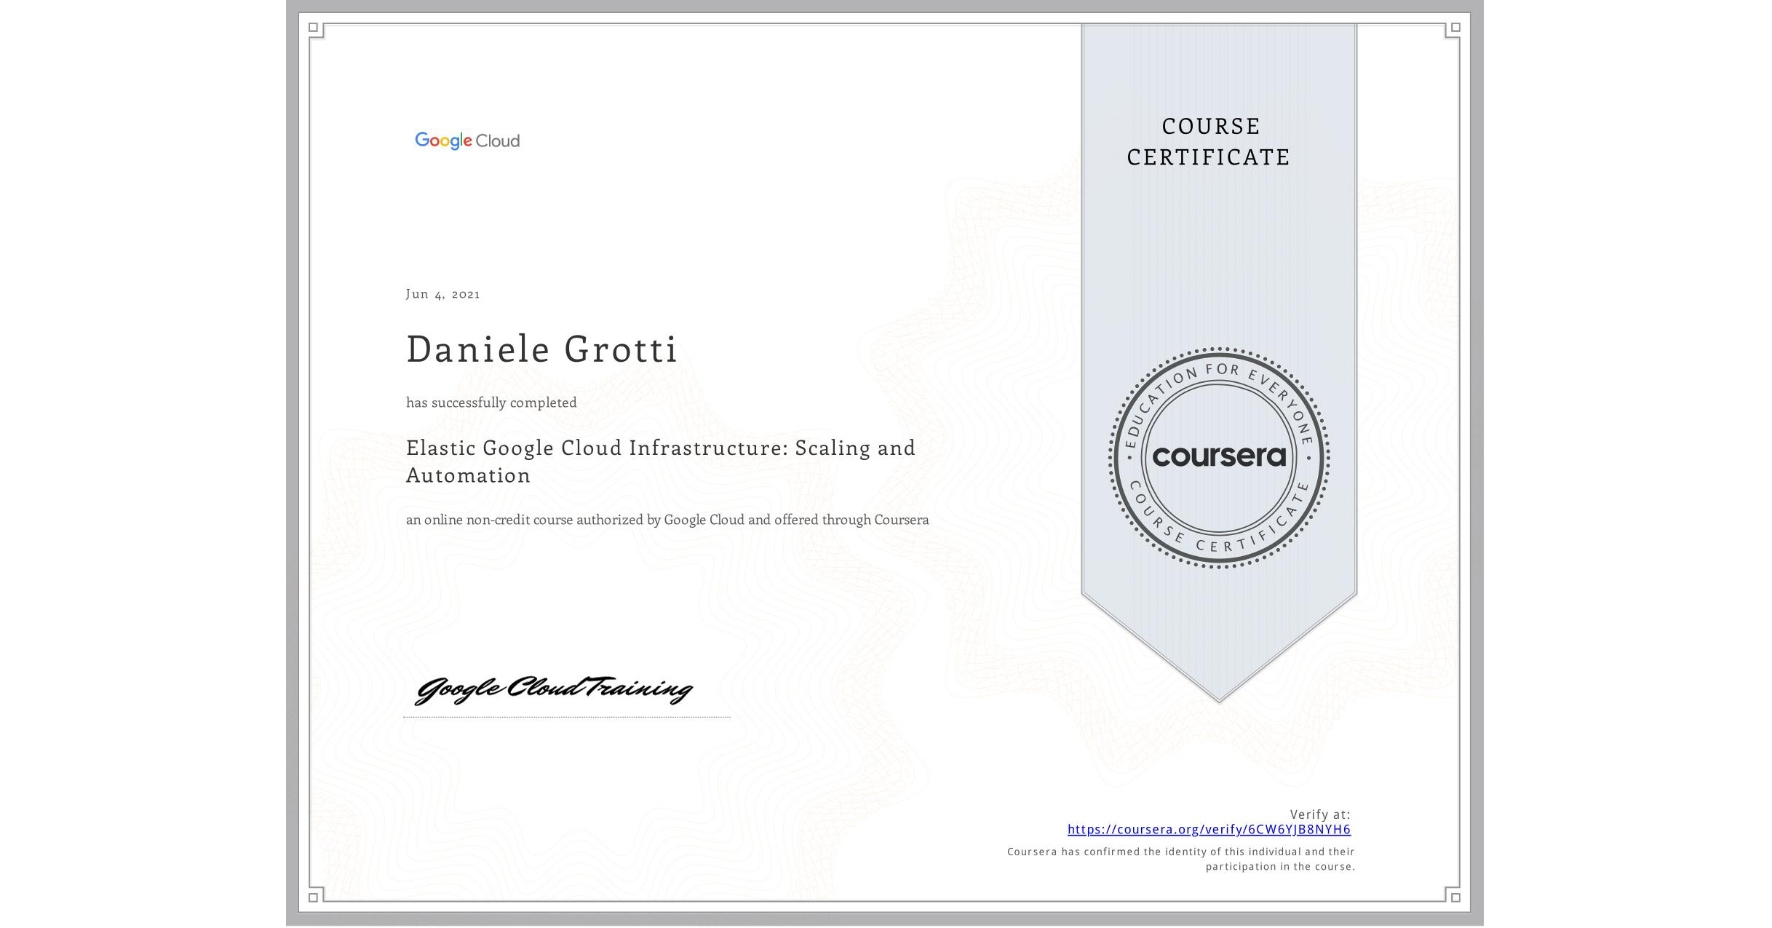 View certificate for Daniele Grotti, Elastic Google Cloud Infrastructure: Scaling and Automation, an online non-credit course authorized by Google Cloud and offered through Coursera